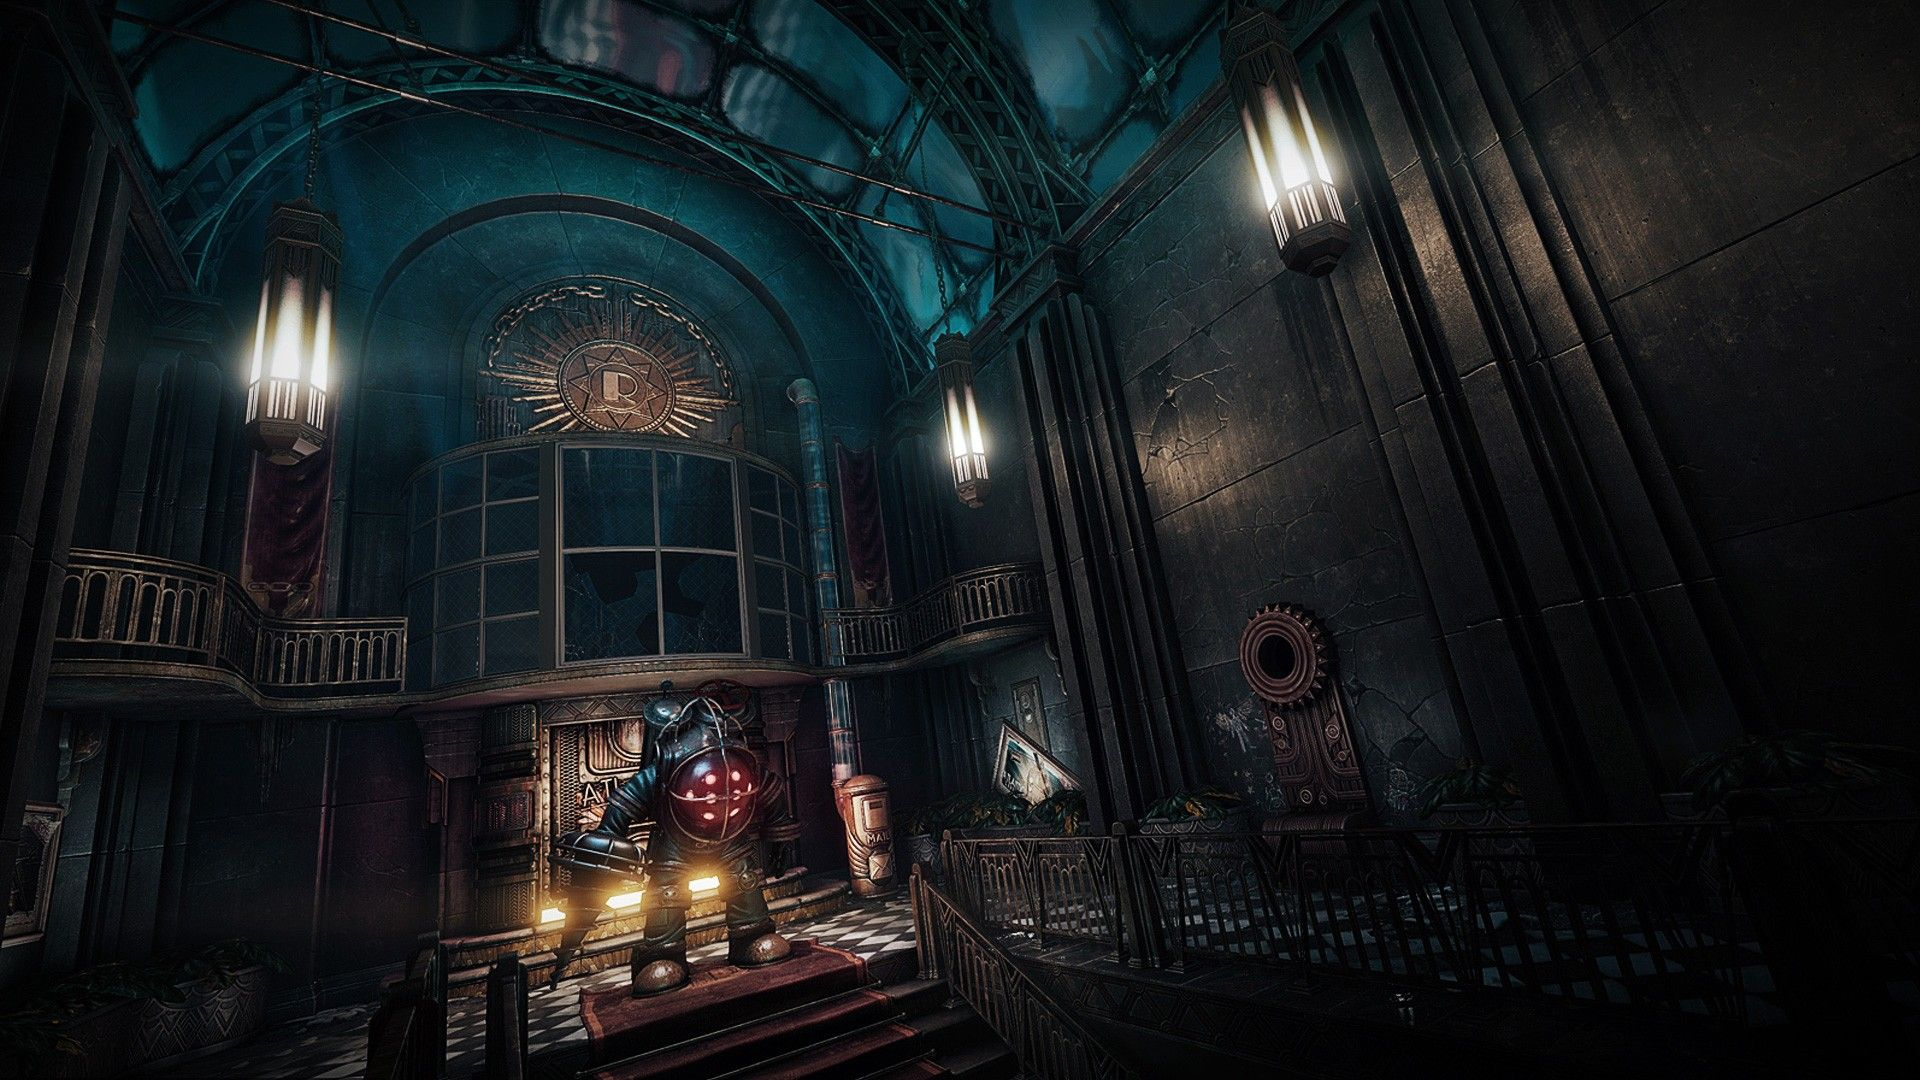 Collection of Bioshock Rapture Wallpaper on HDWallpapers 1920×1080 Rapture BioShock Wallpapers (48 Wallpapers) | Adorable Wallpapers